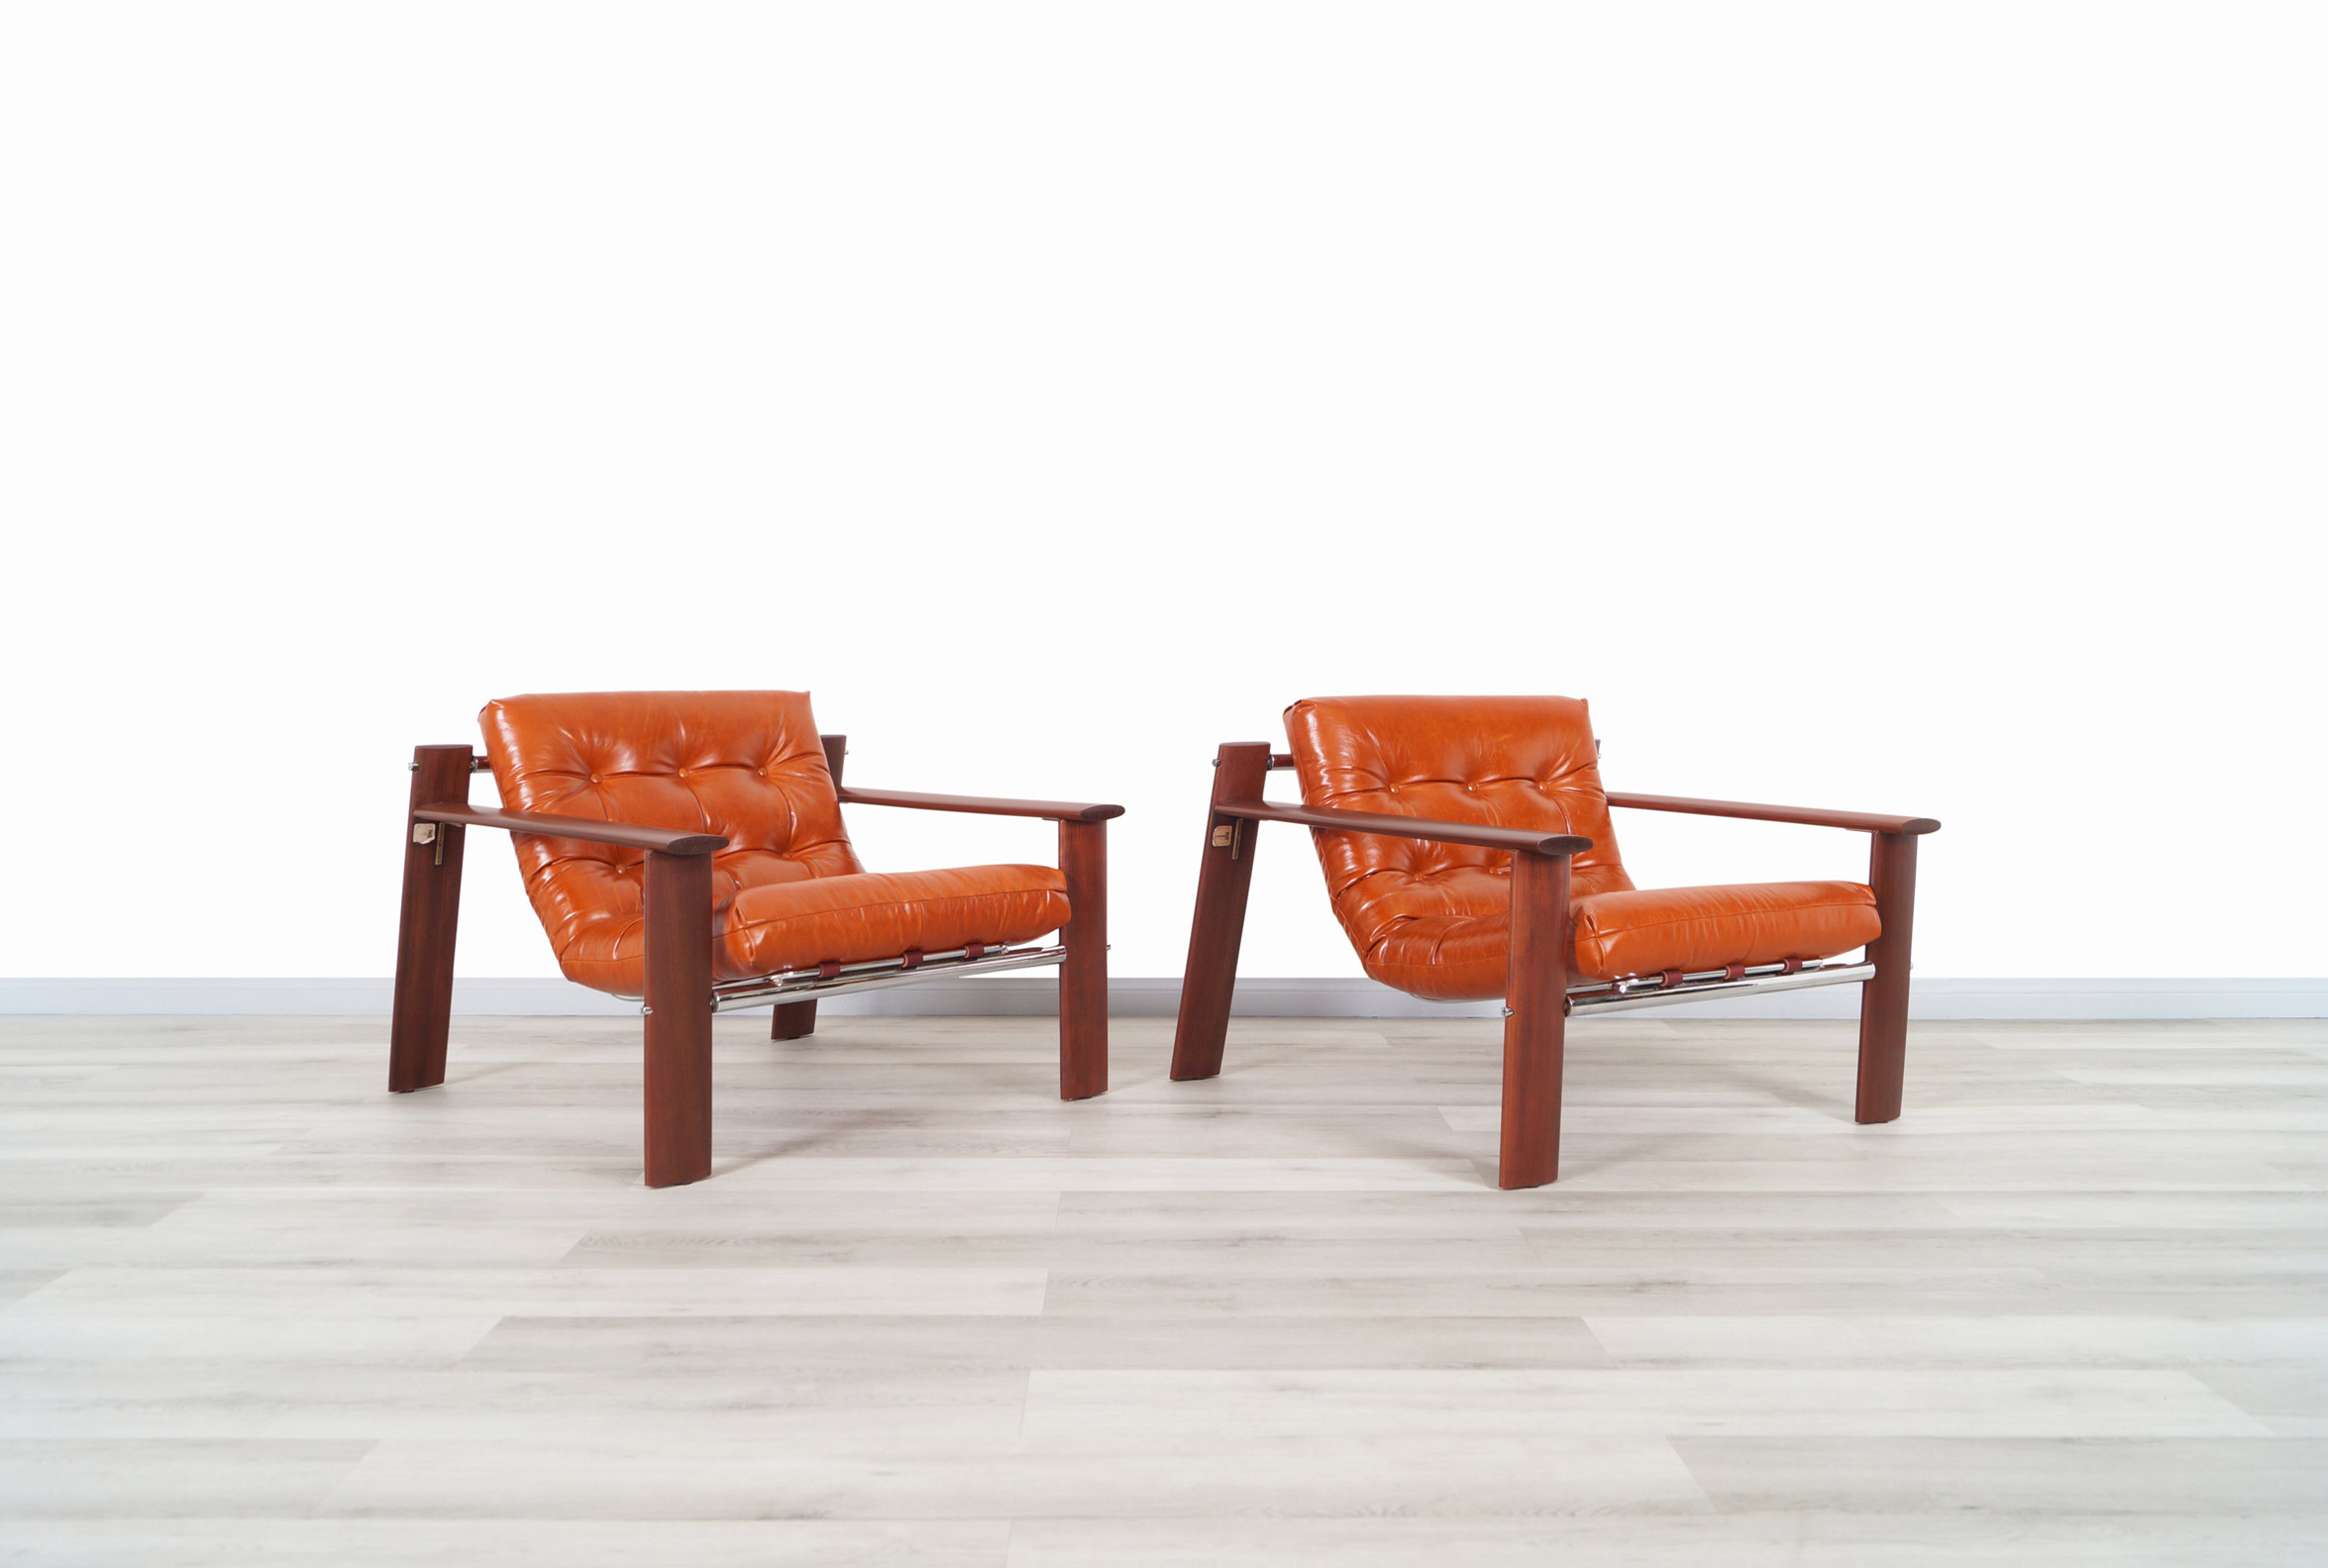 Brazilian MP-129 Jacaranda and Leather Lounge Chairs by Percival Lafer